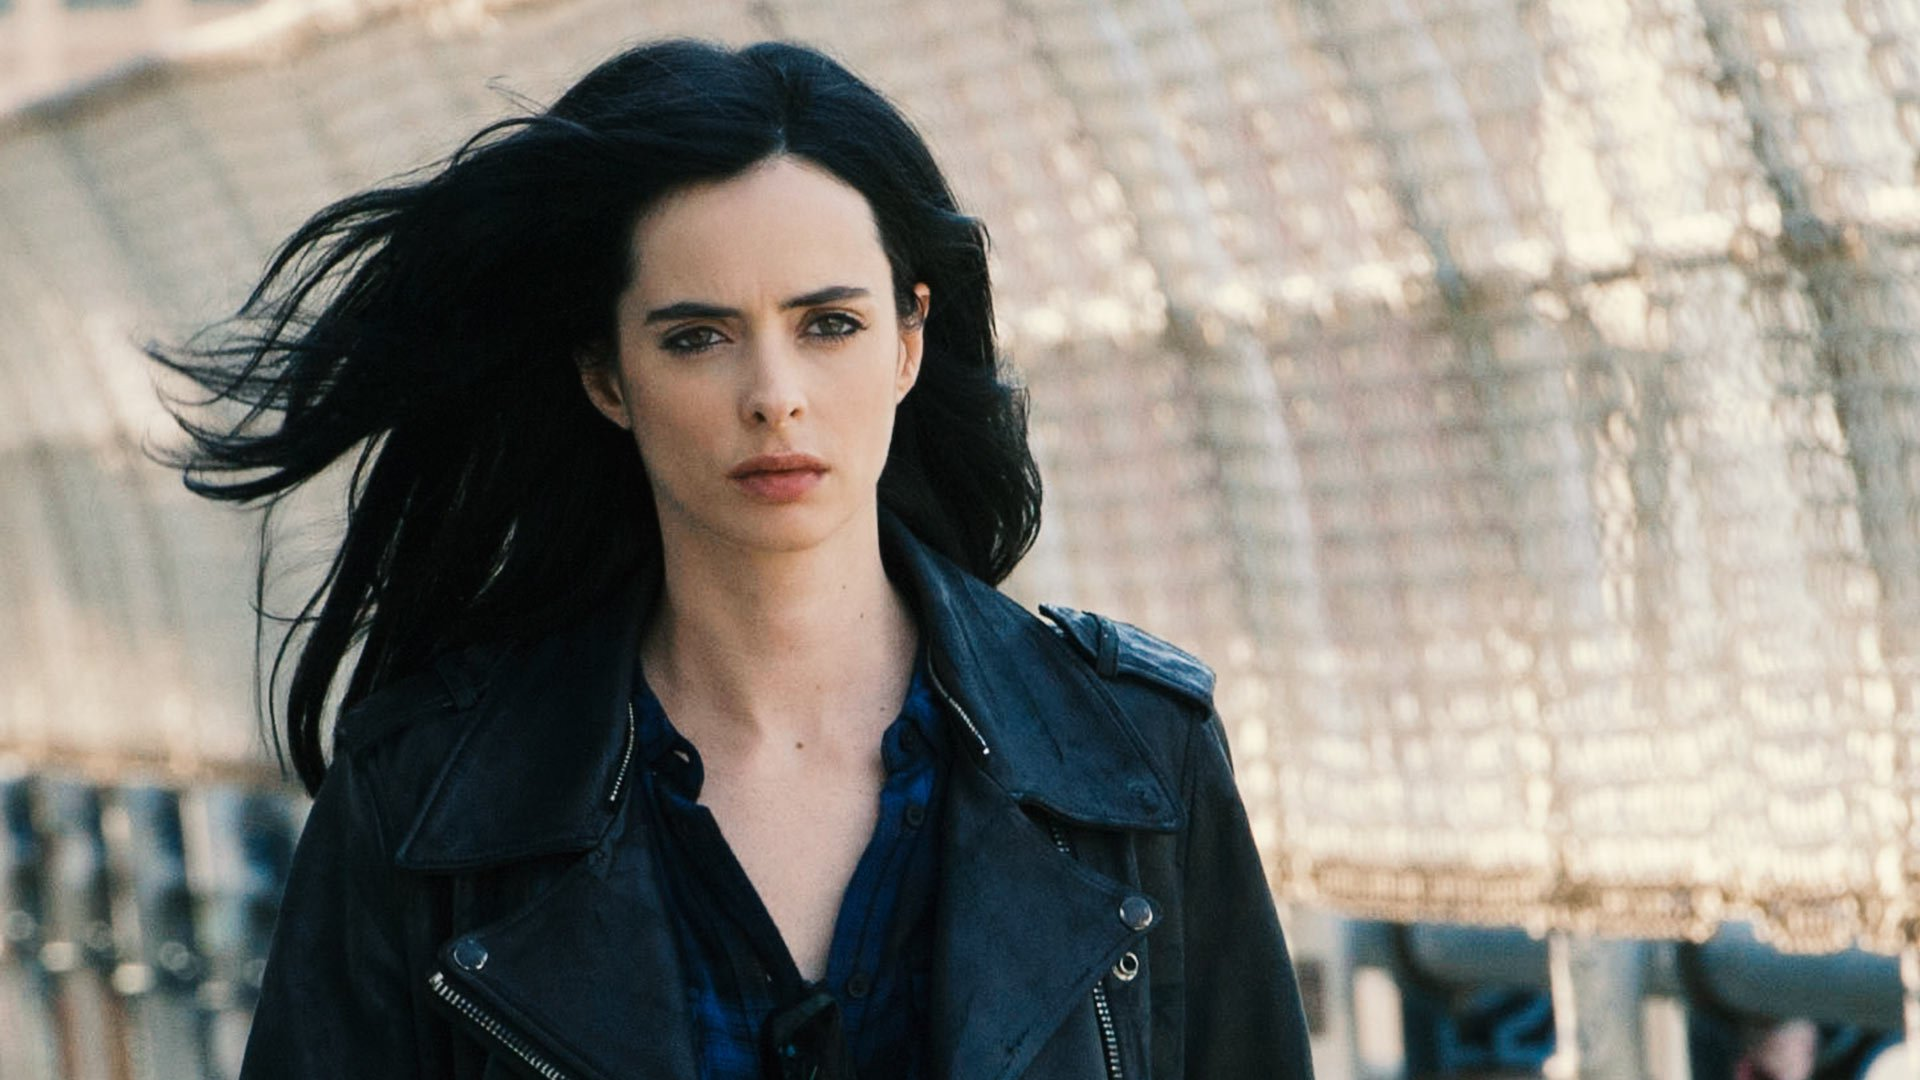 Jessica Jones Is the First Marvel Netflix Show That Most Viewers Watch